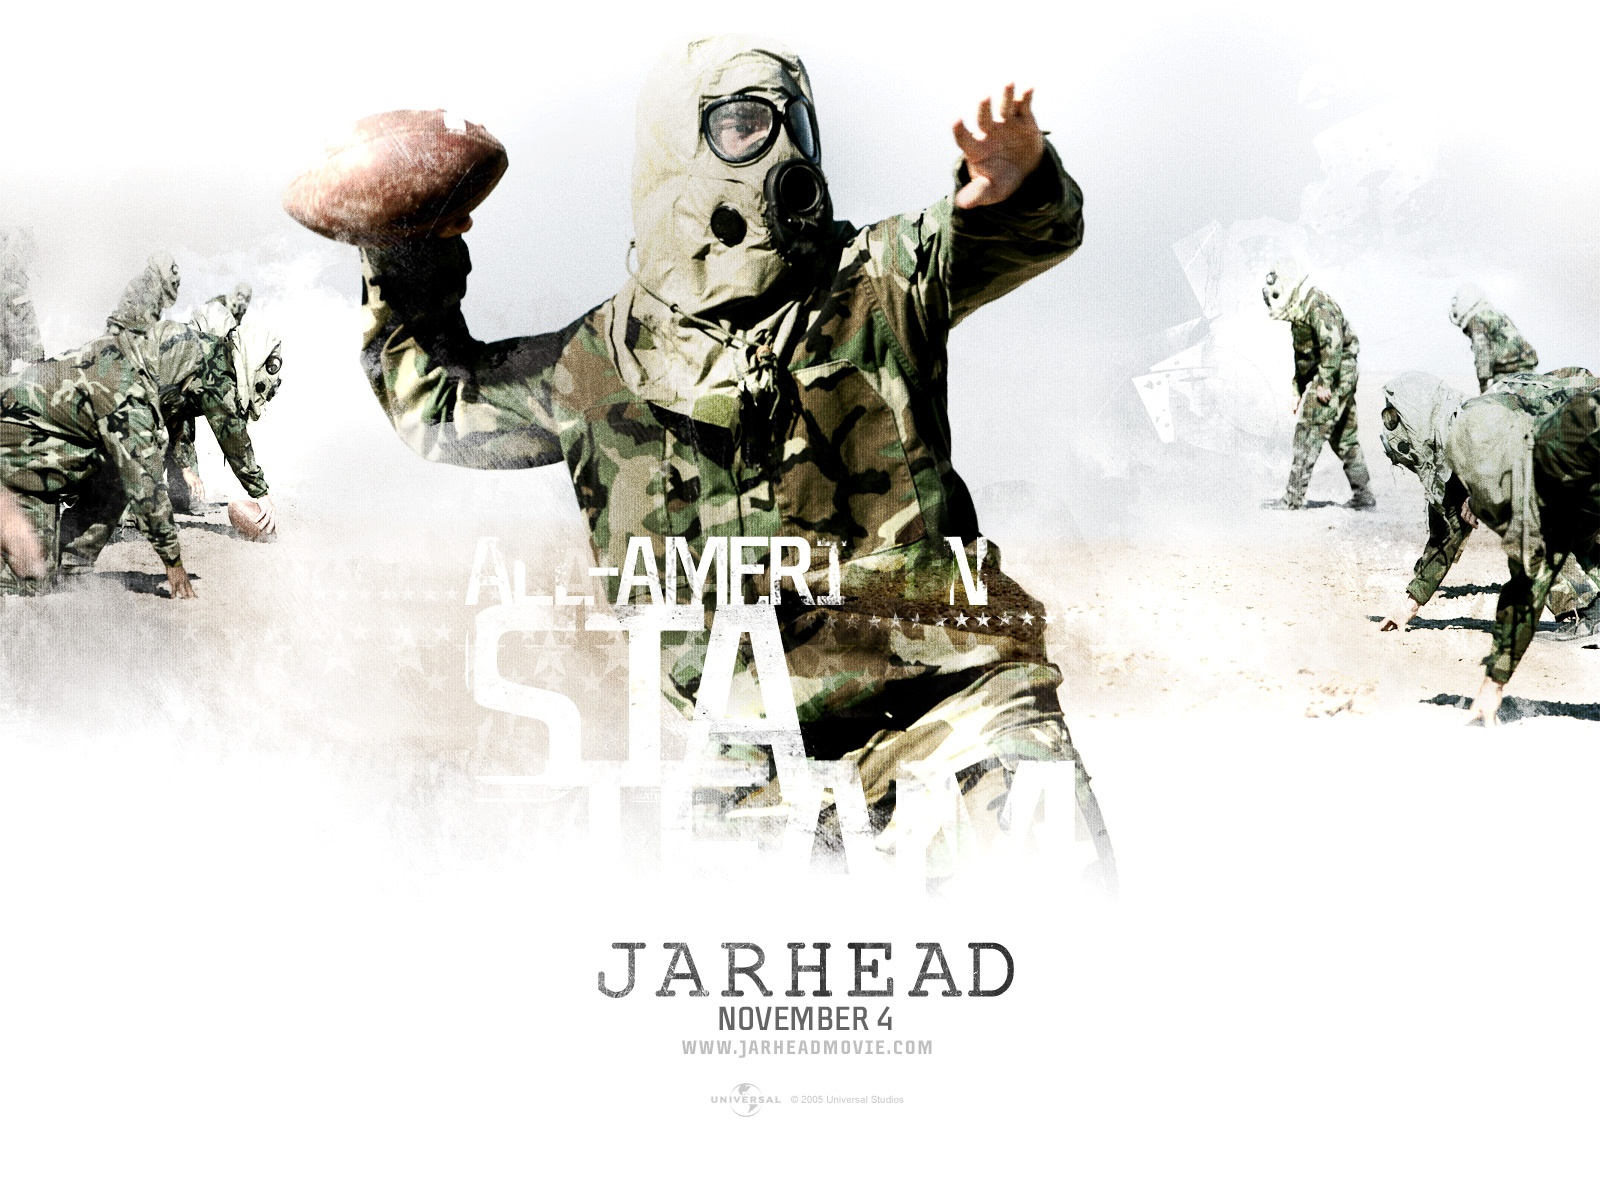 Jarhead all star game wallpapers | Jarhead all star game ...